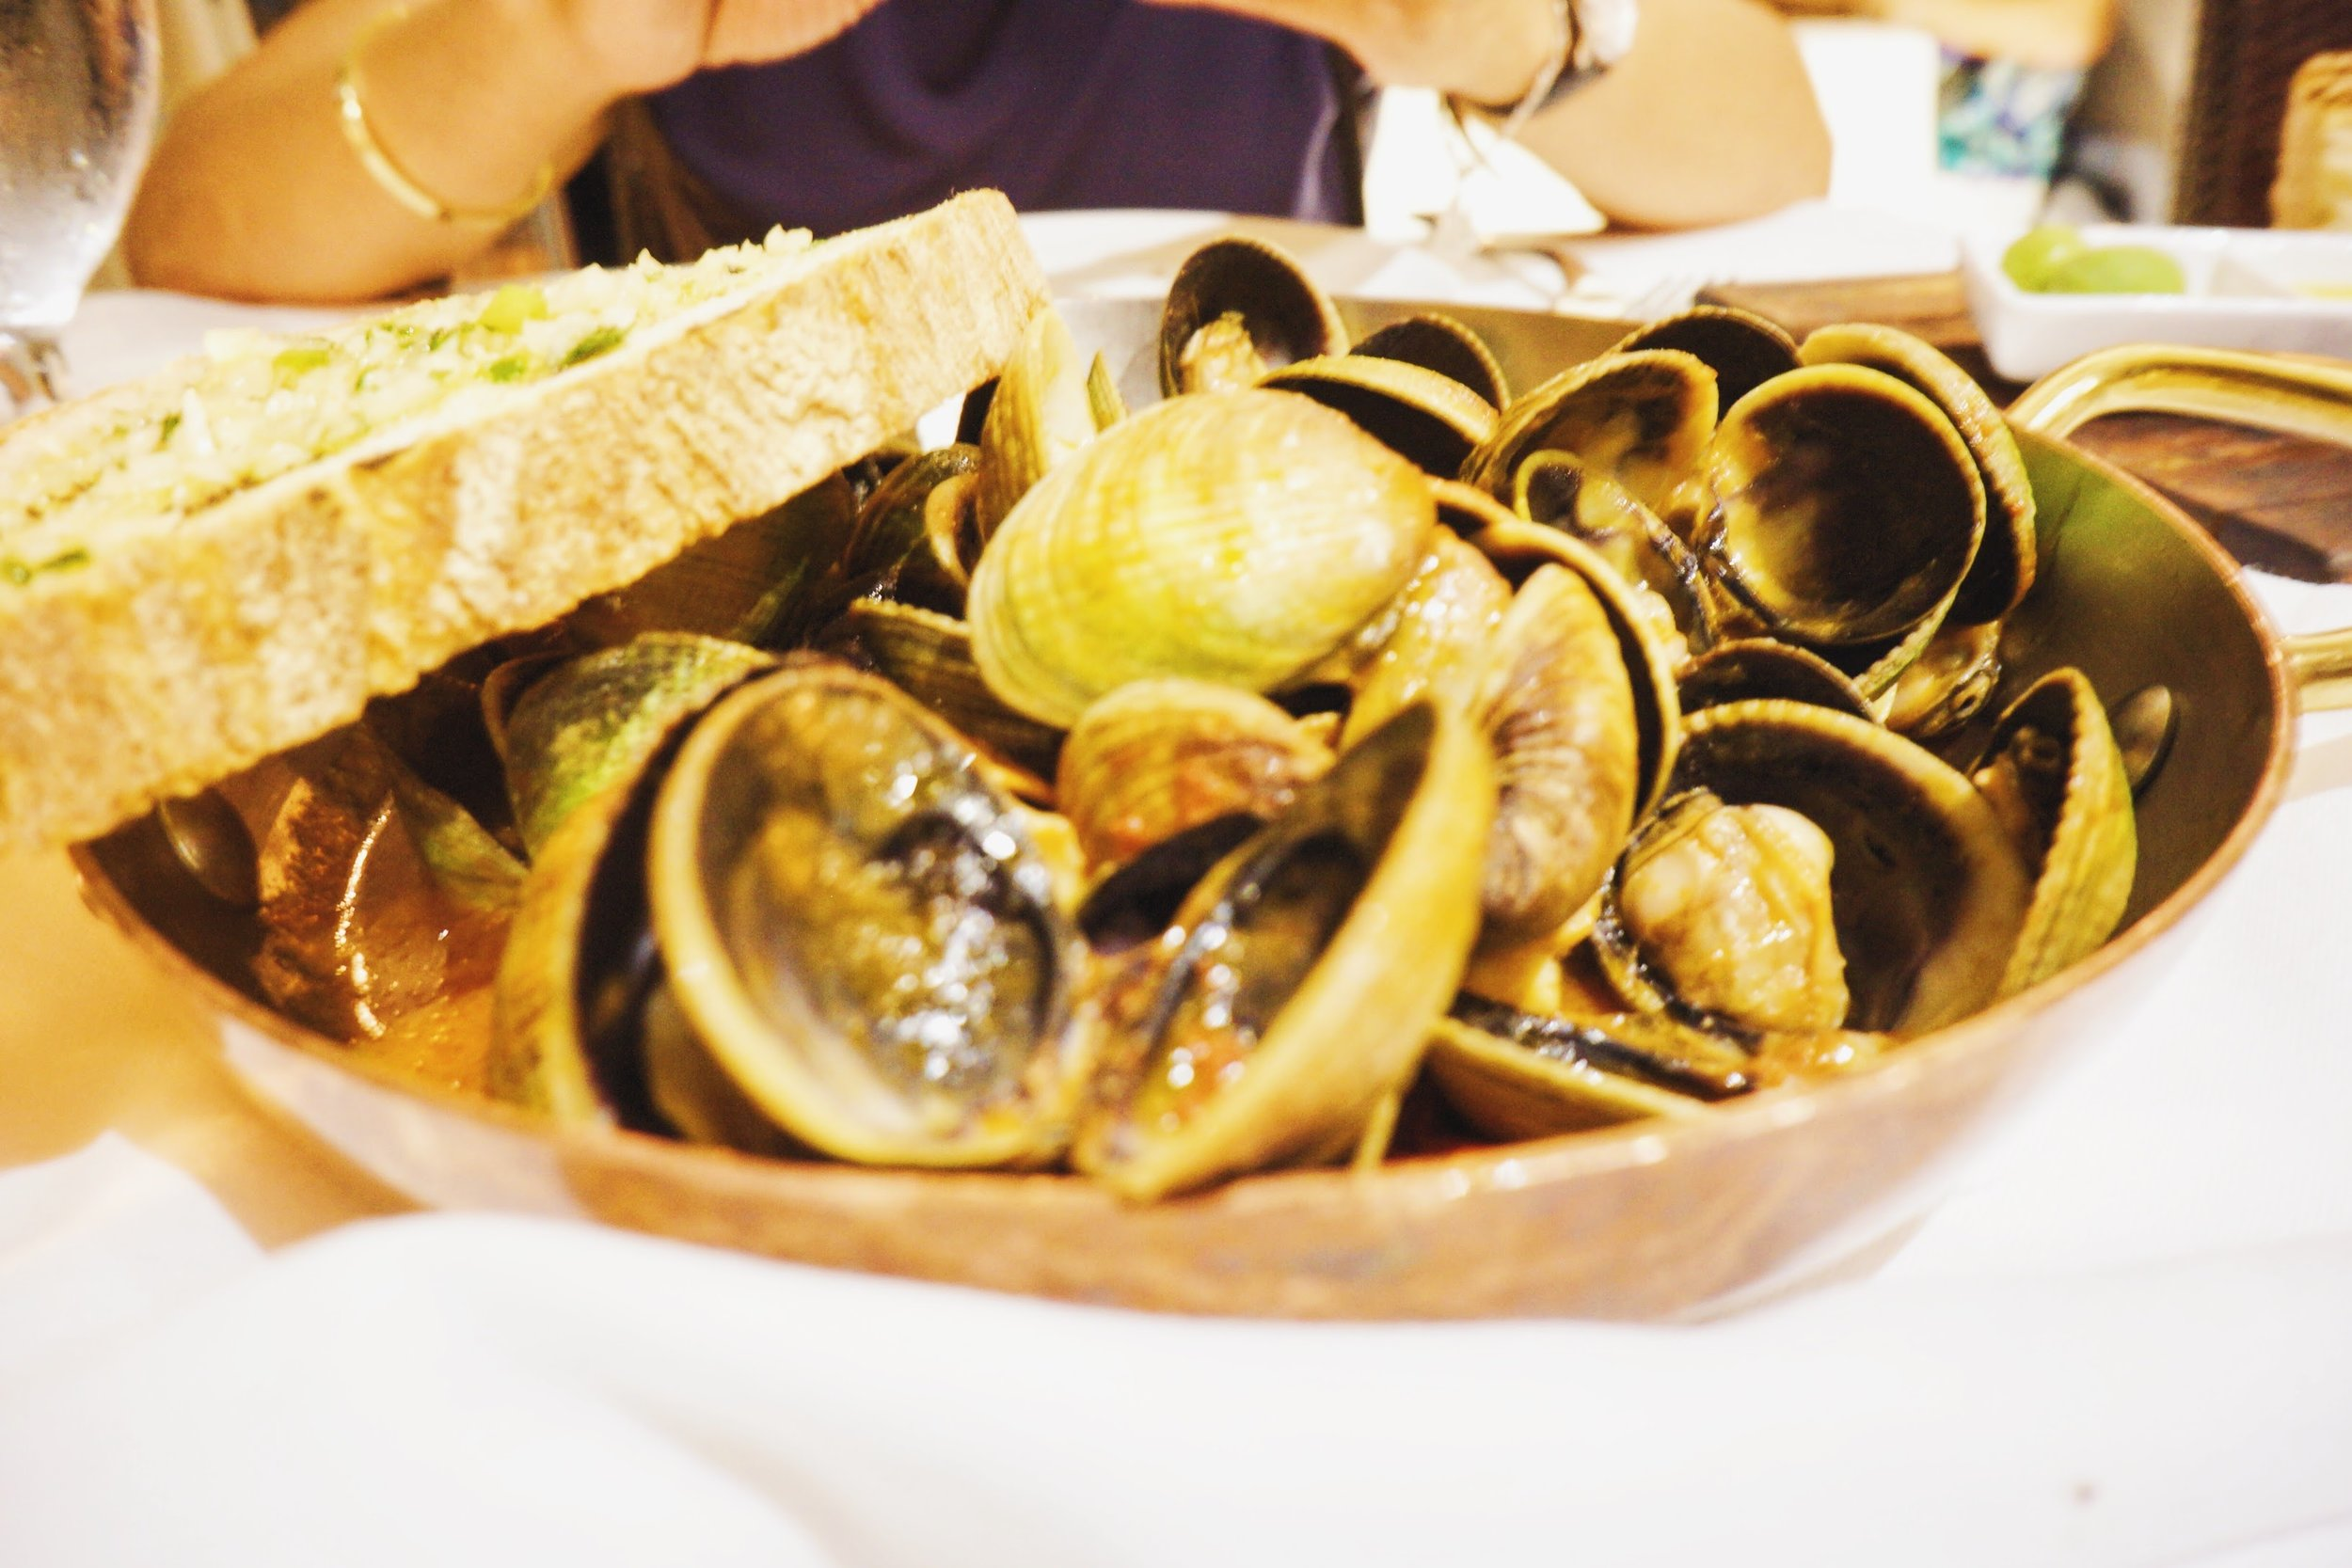 Clams in a spiced tomato broth.